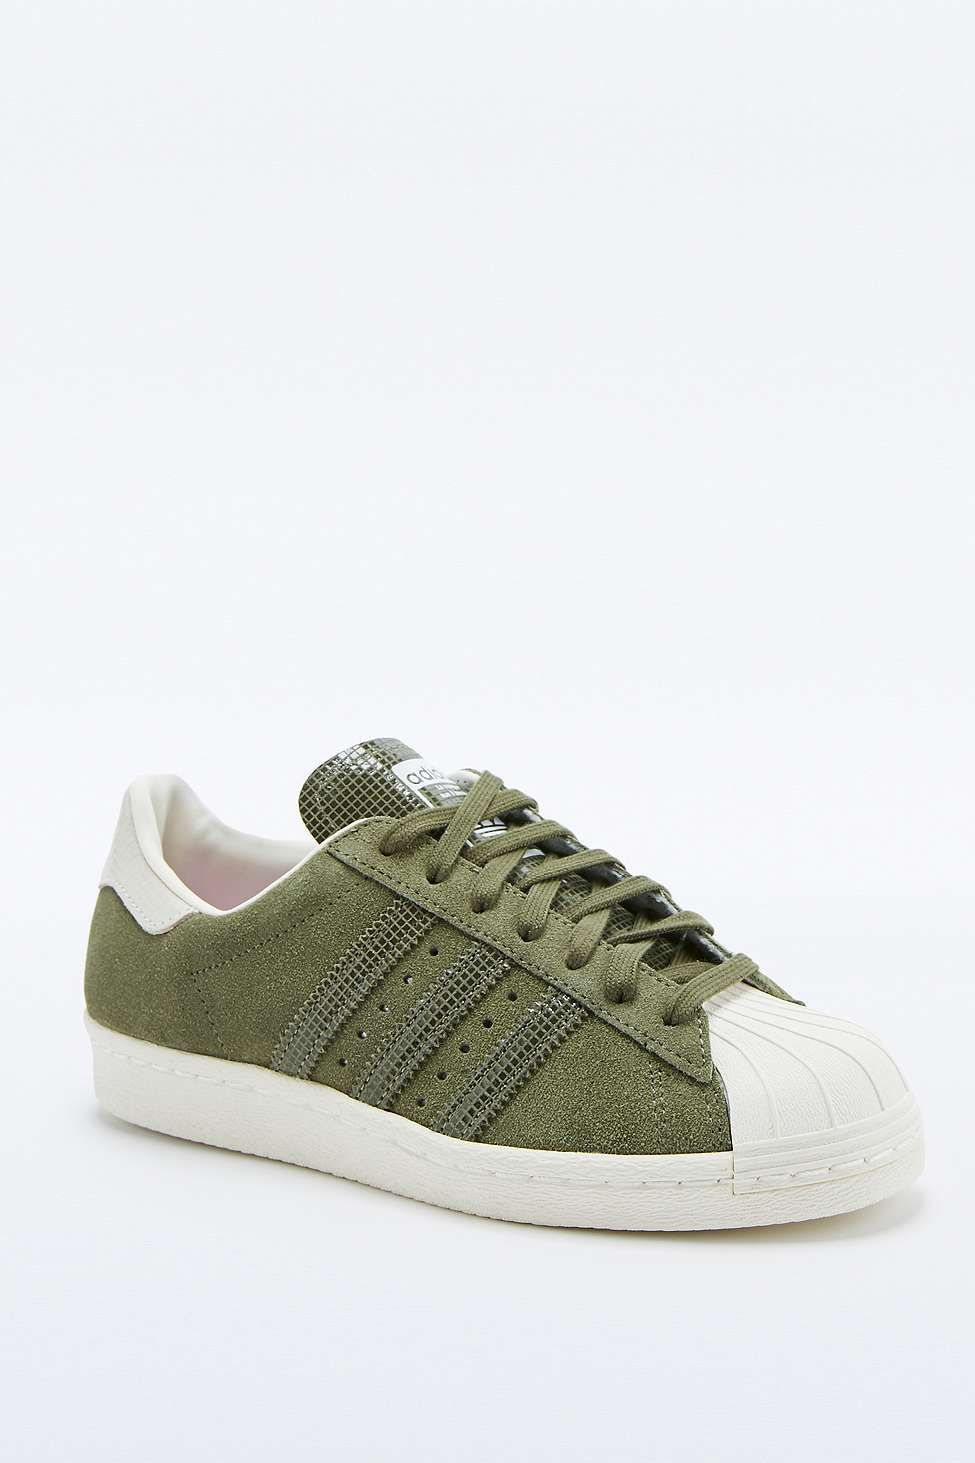 adidas Originals - Baskets Superstar en daim kaki